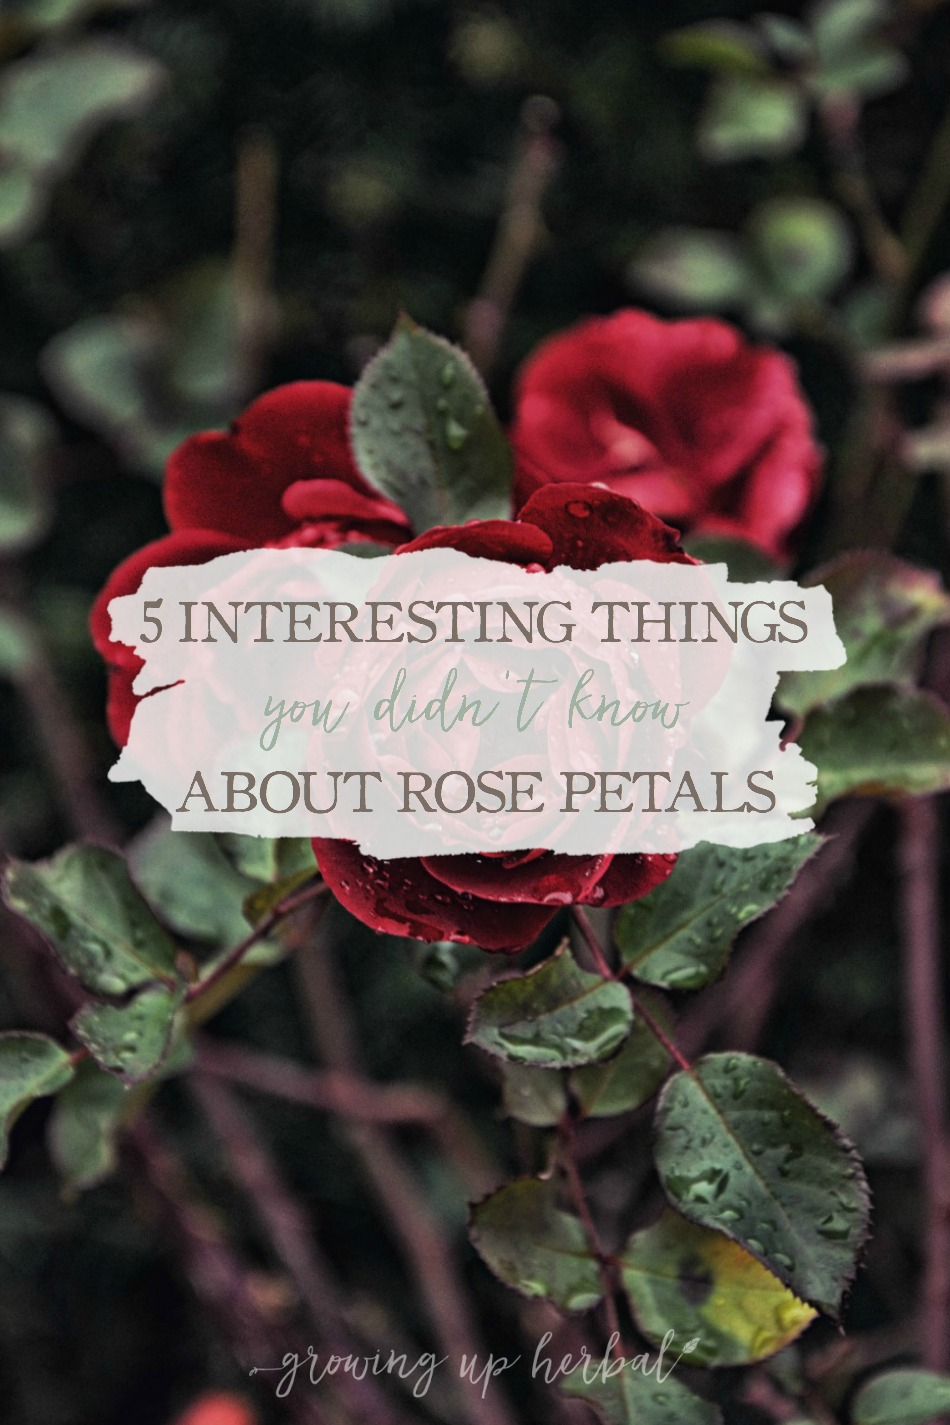 5 Interesting Things You Didn't Know About Rose Petals | Growing Up Herbal | Do you know these 5 interesting things about rose petals? Plus, some ways to use them in herbal remedies as well!